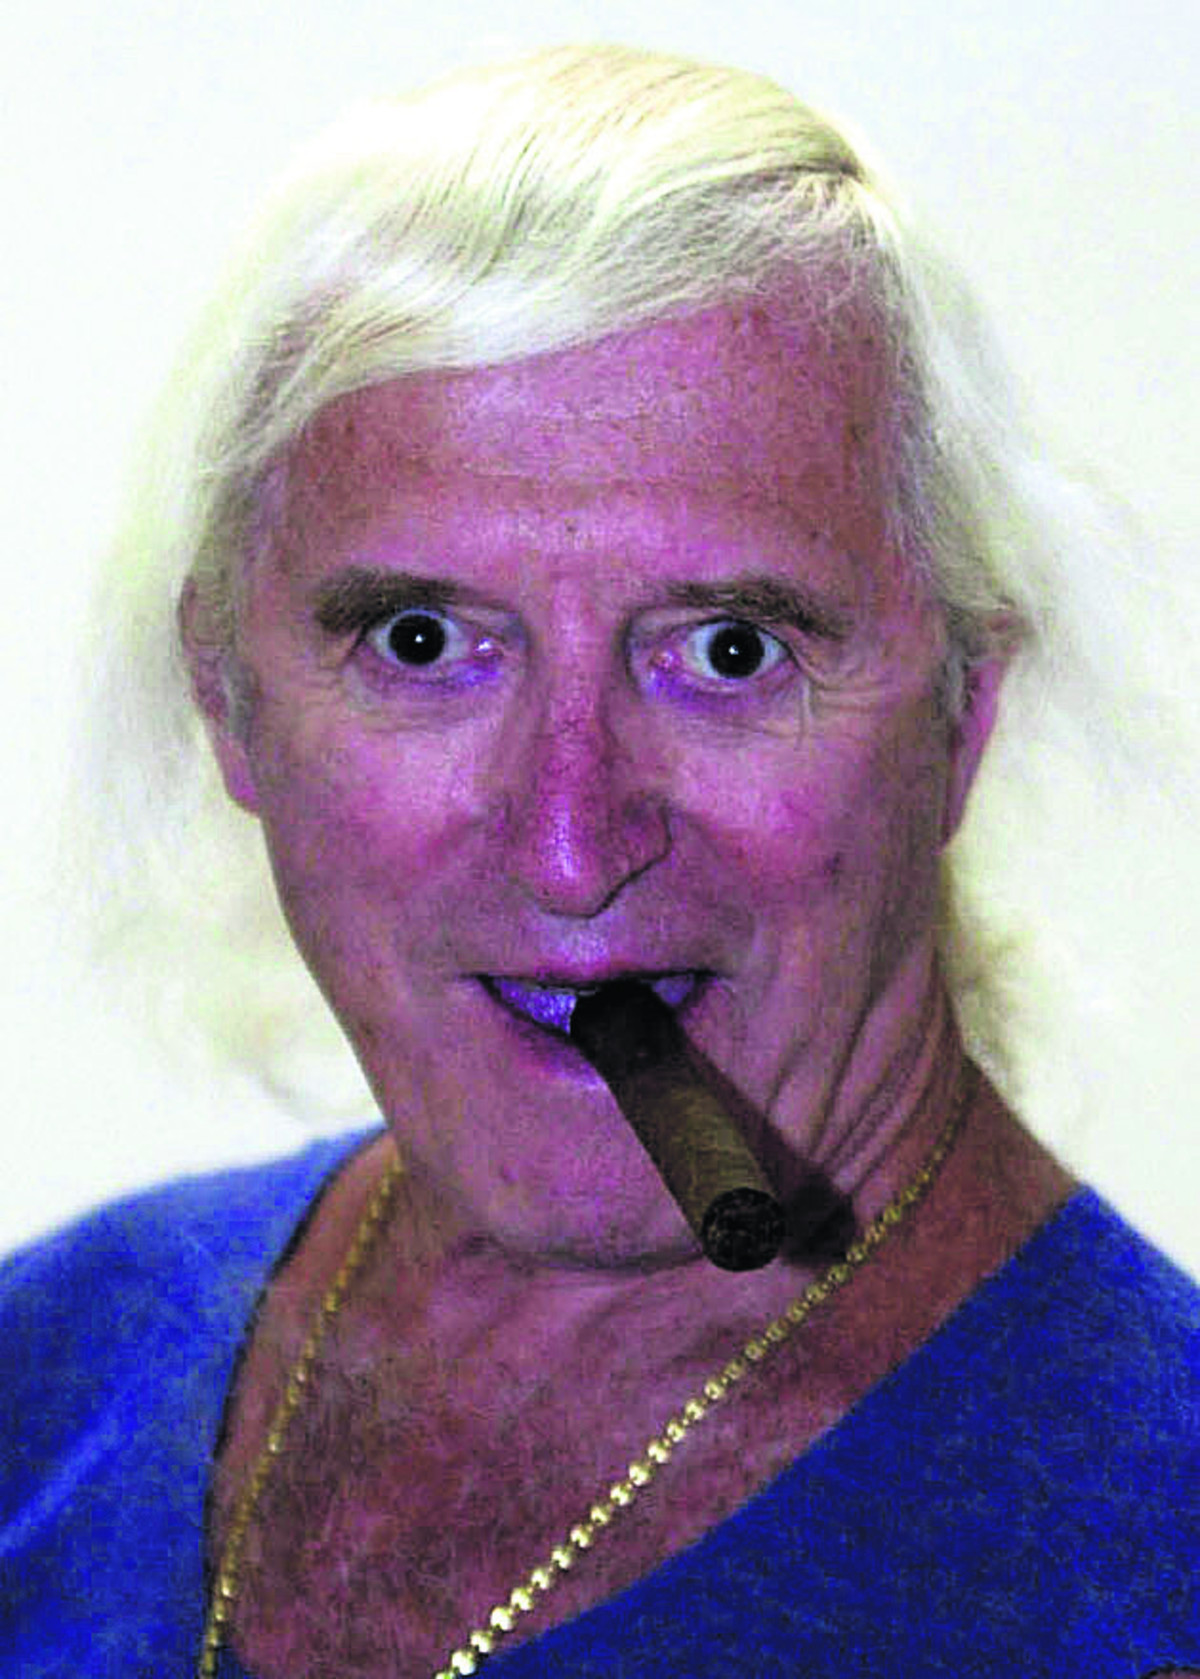 Sidcup children's home in Jimmy Savile abuse investigation